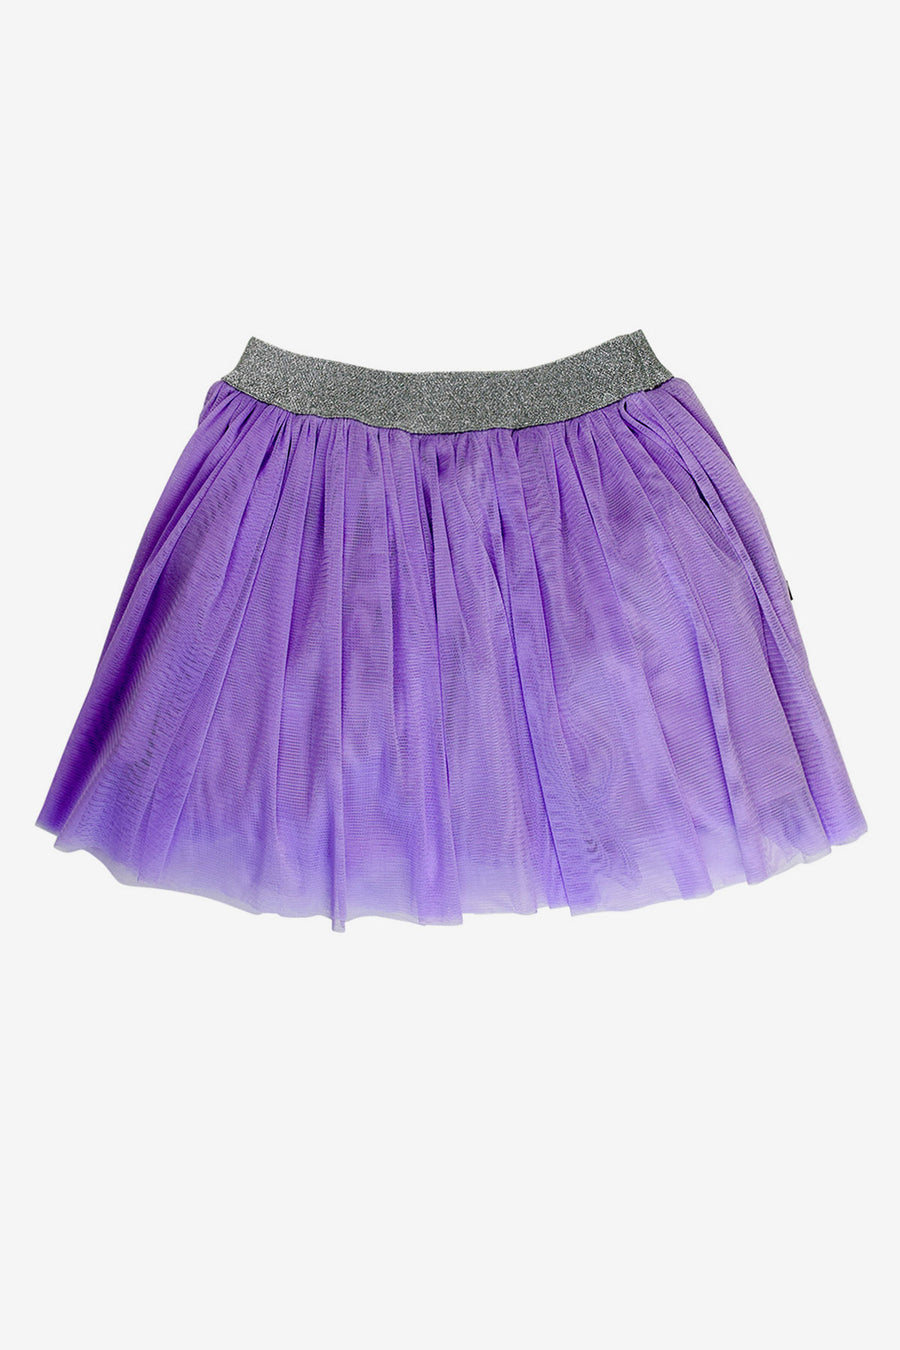 Toobydoo Lavender Tulle Skirt